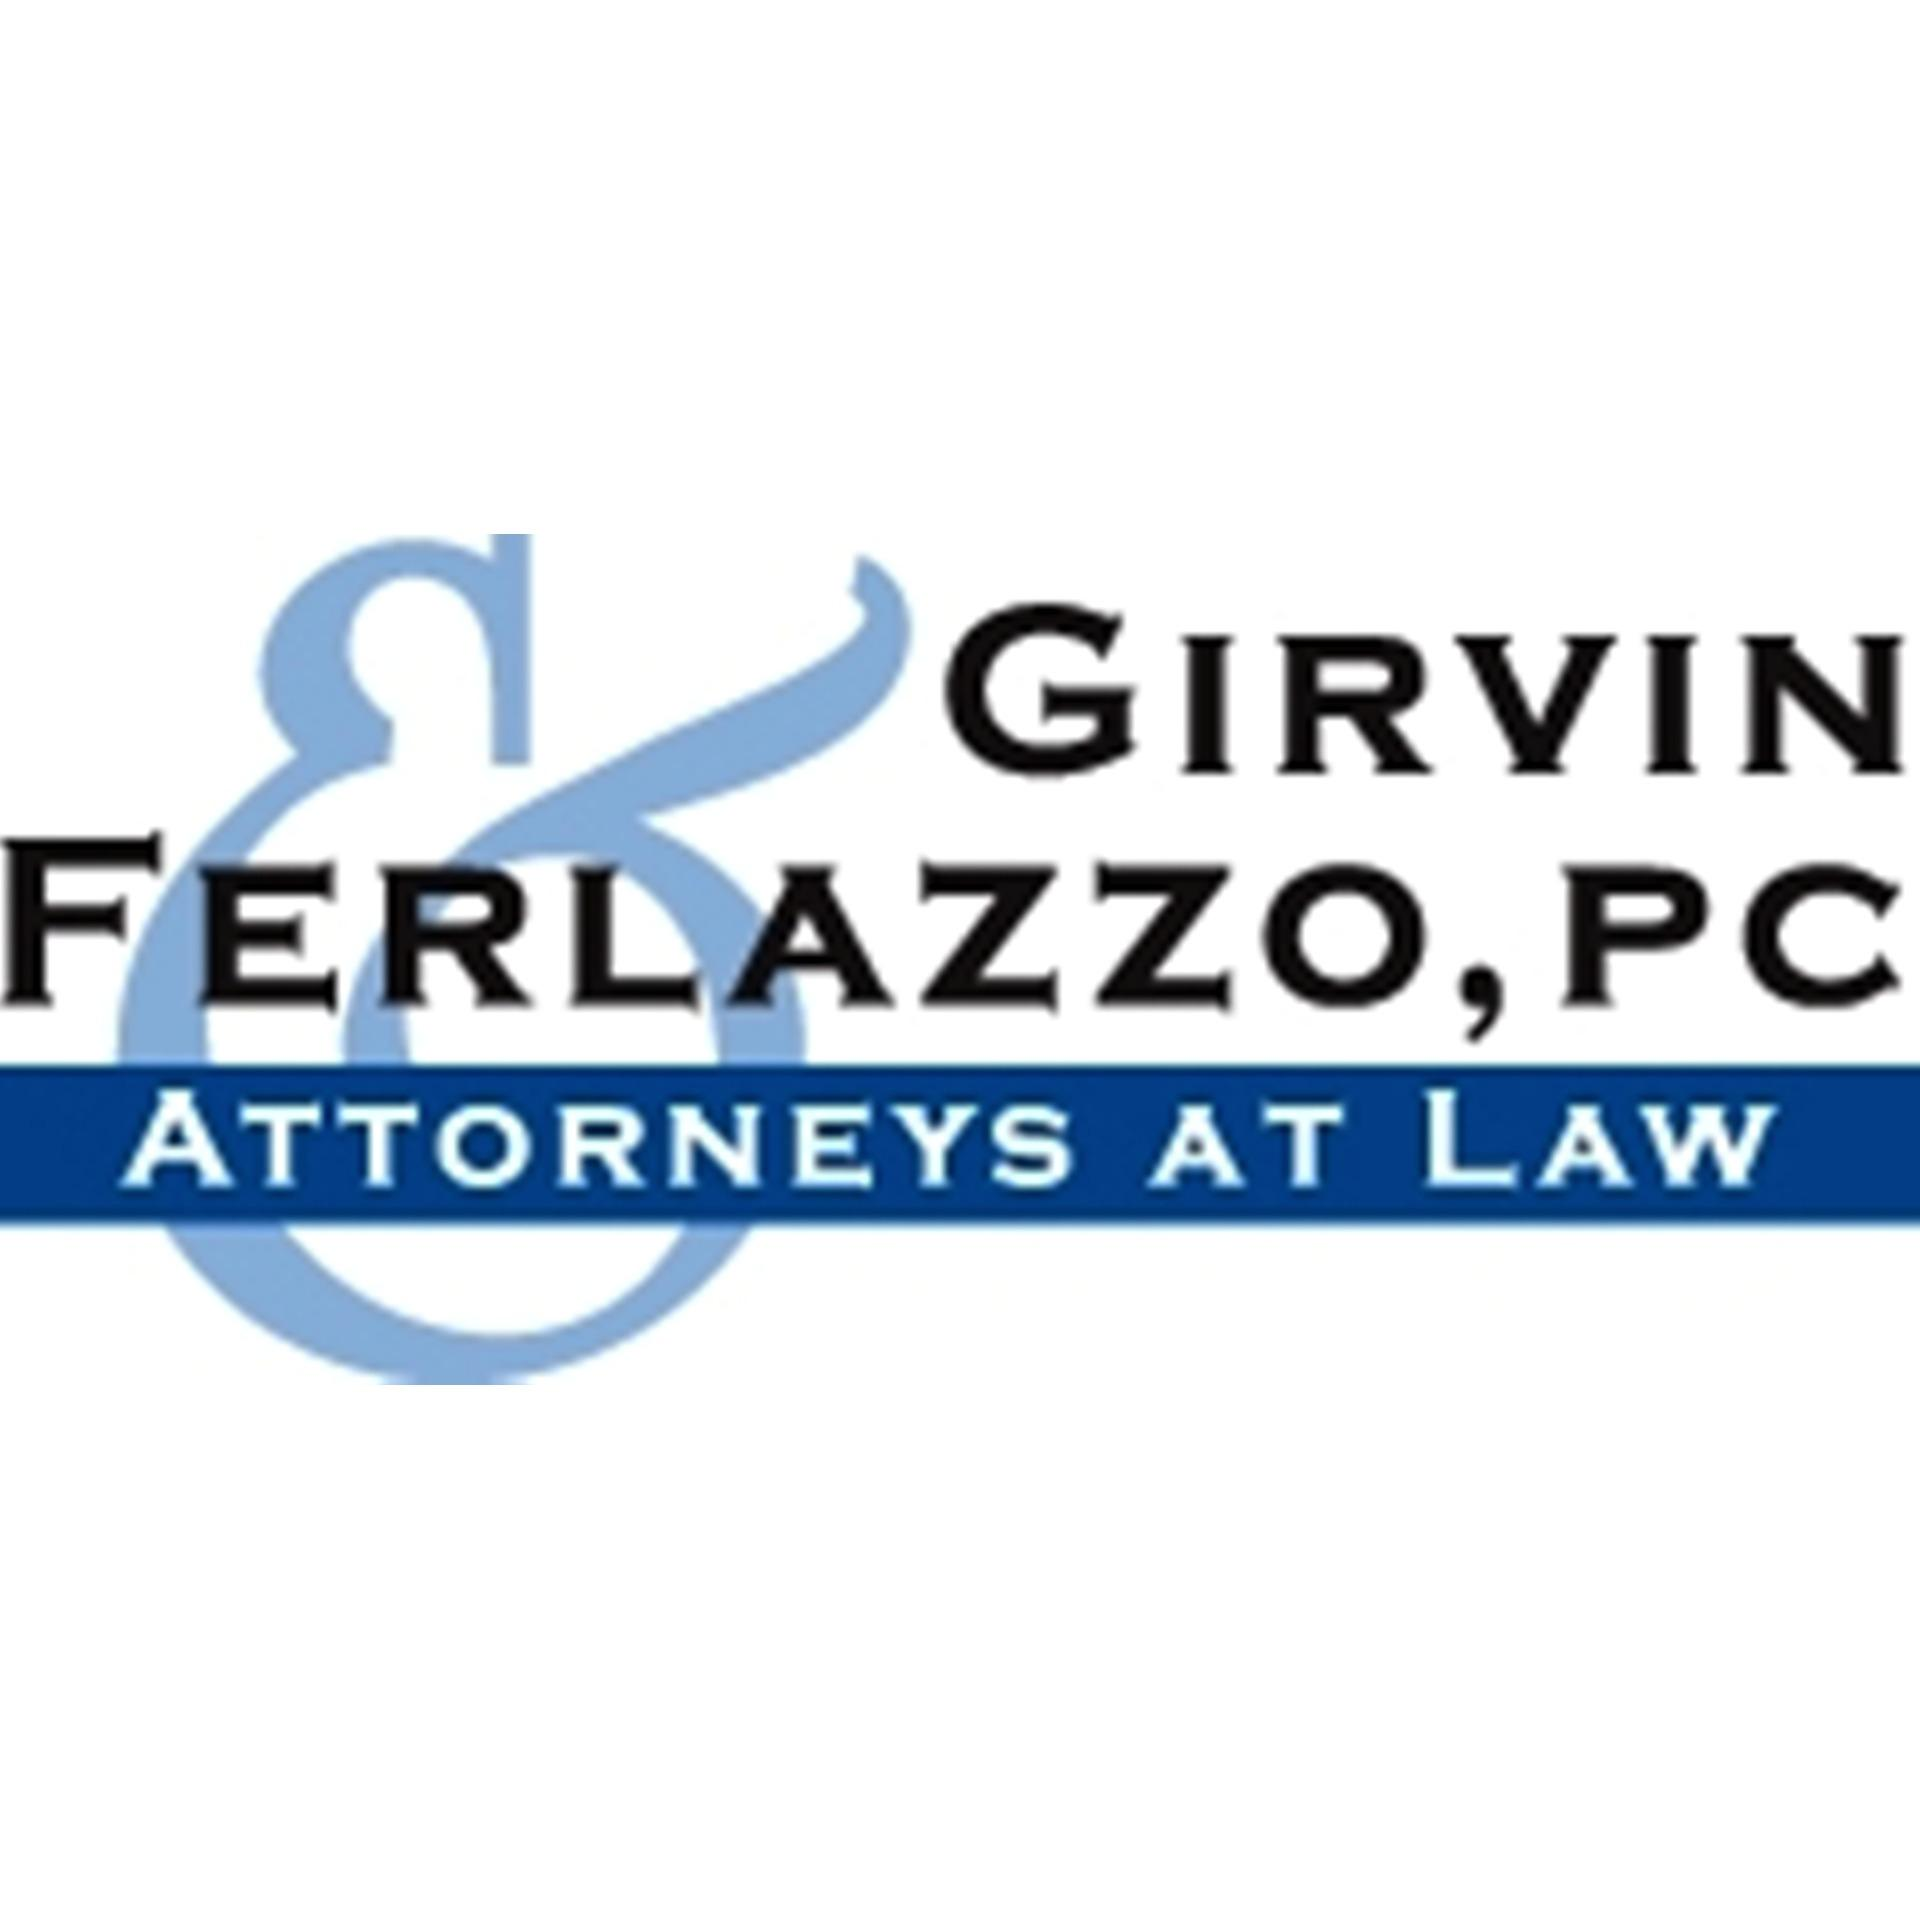 Girvin & Ferlazzo, PC Attorneys at Law